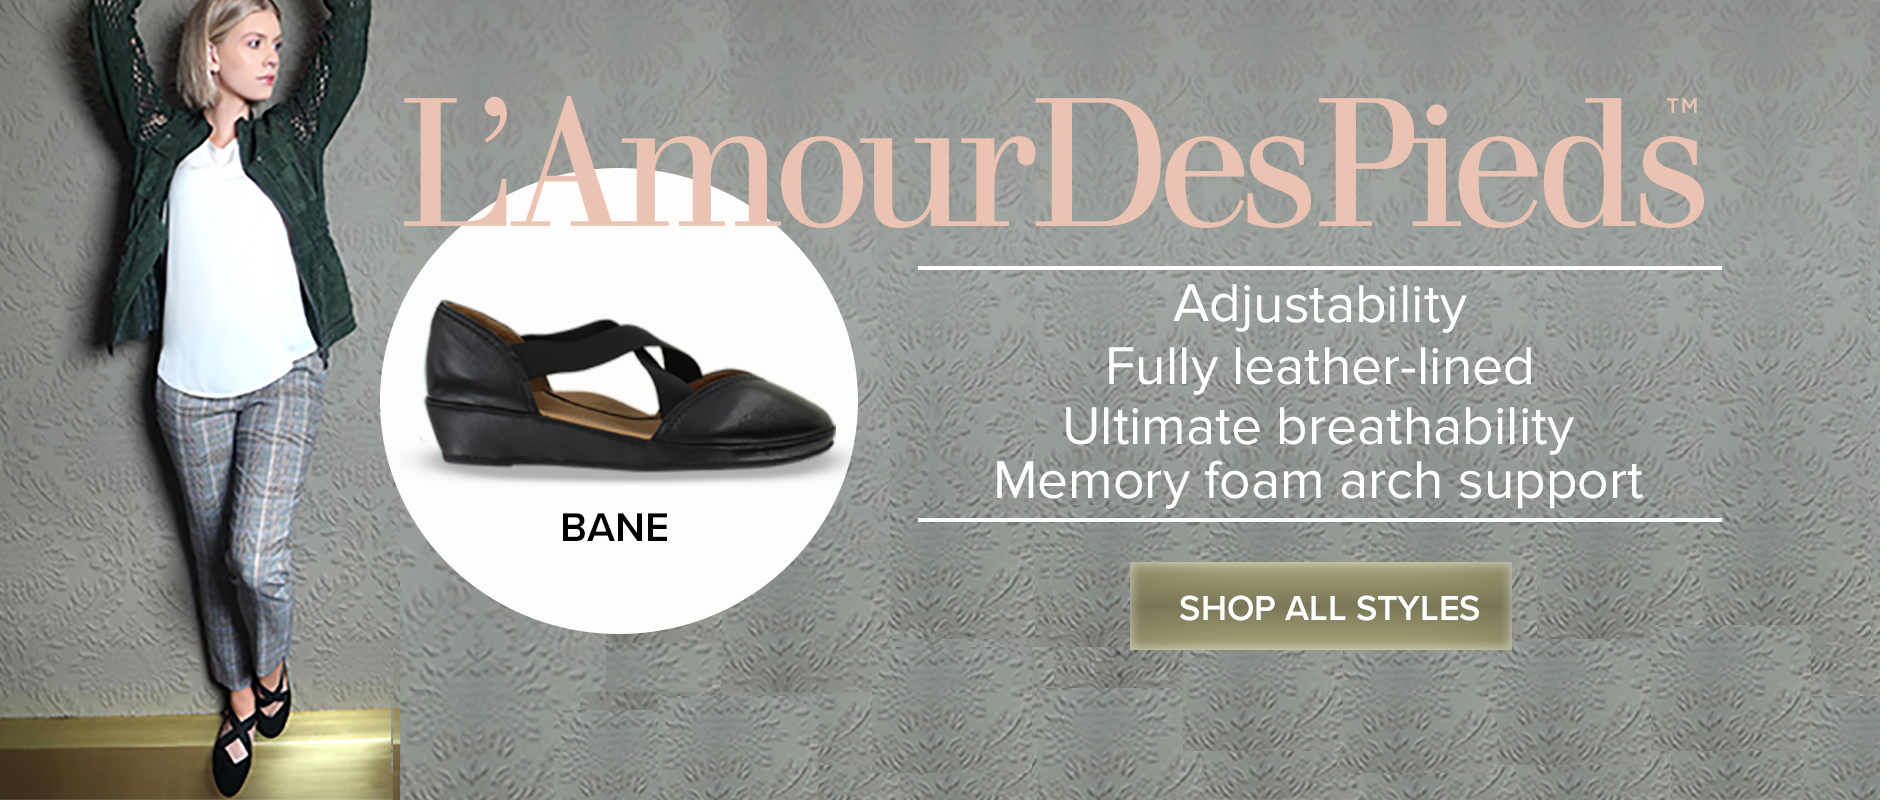 LAmour Des Pieds New Fall Arrivals